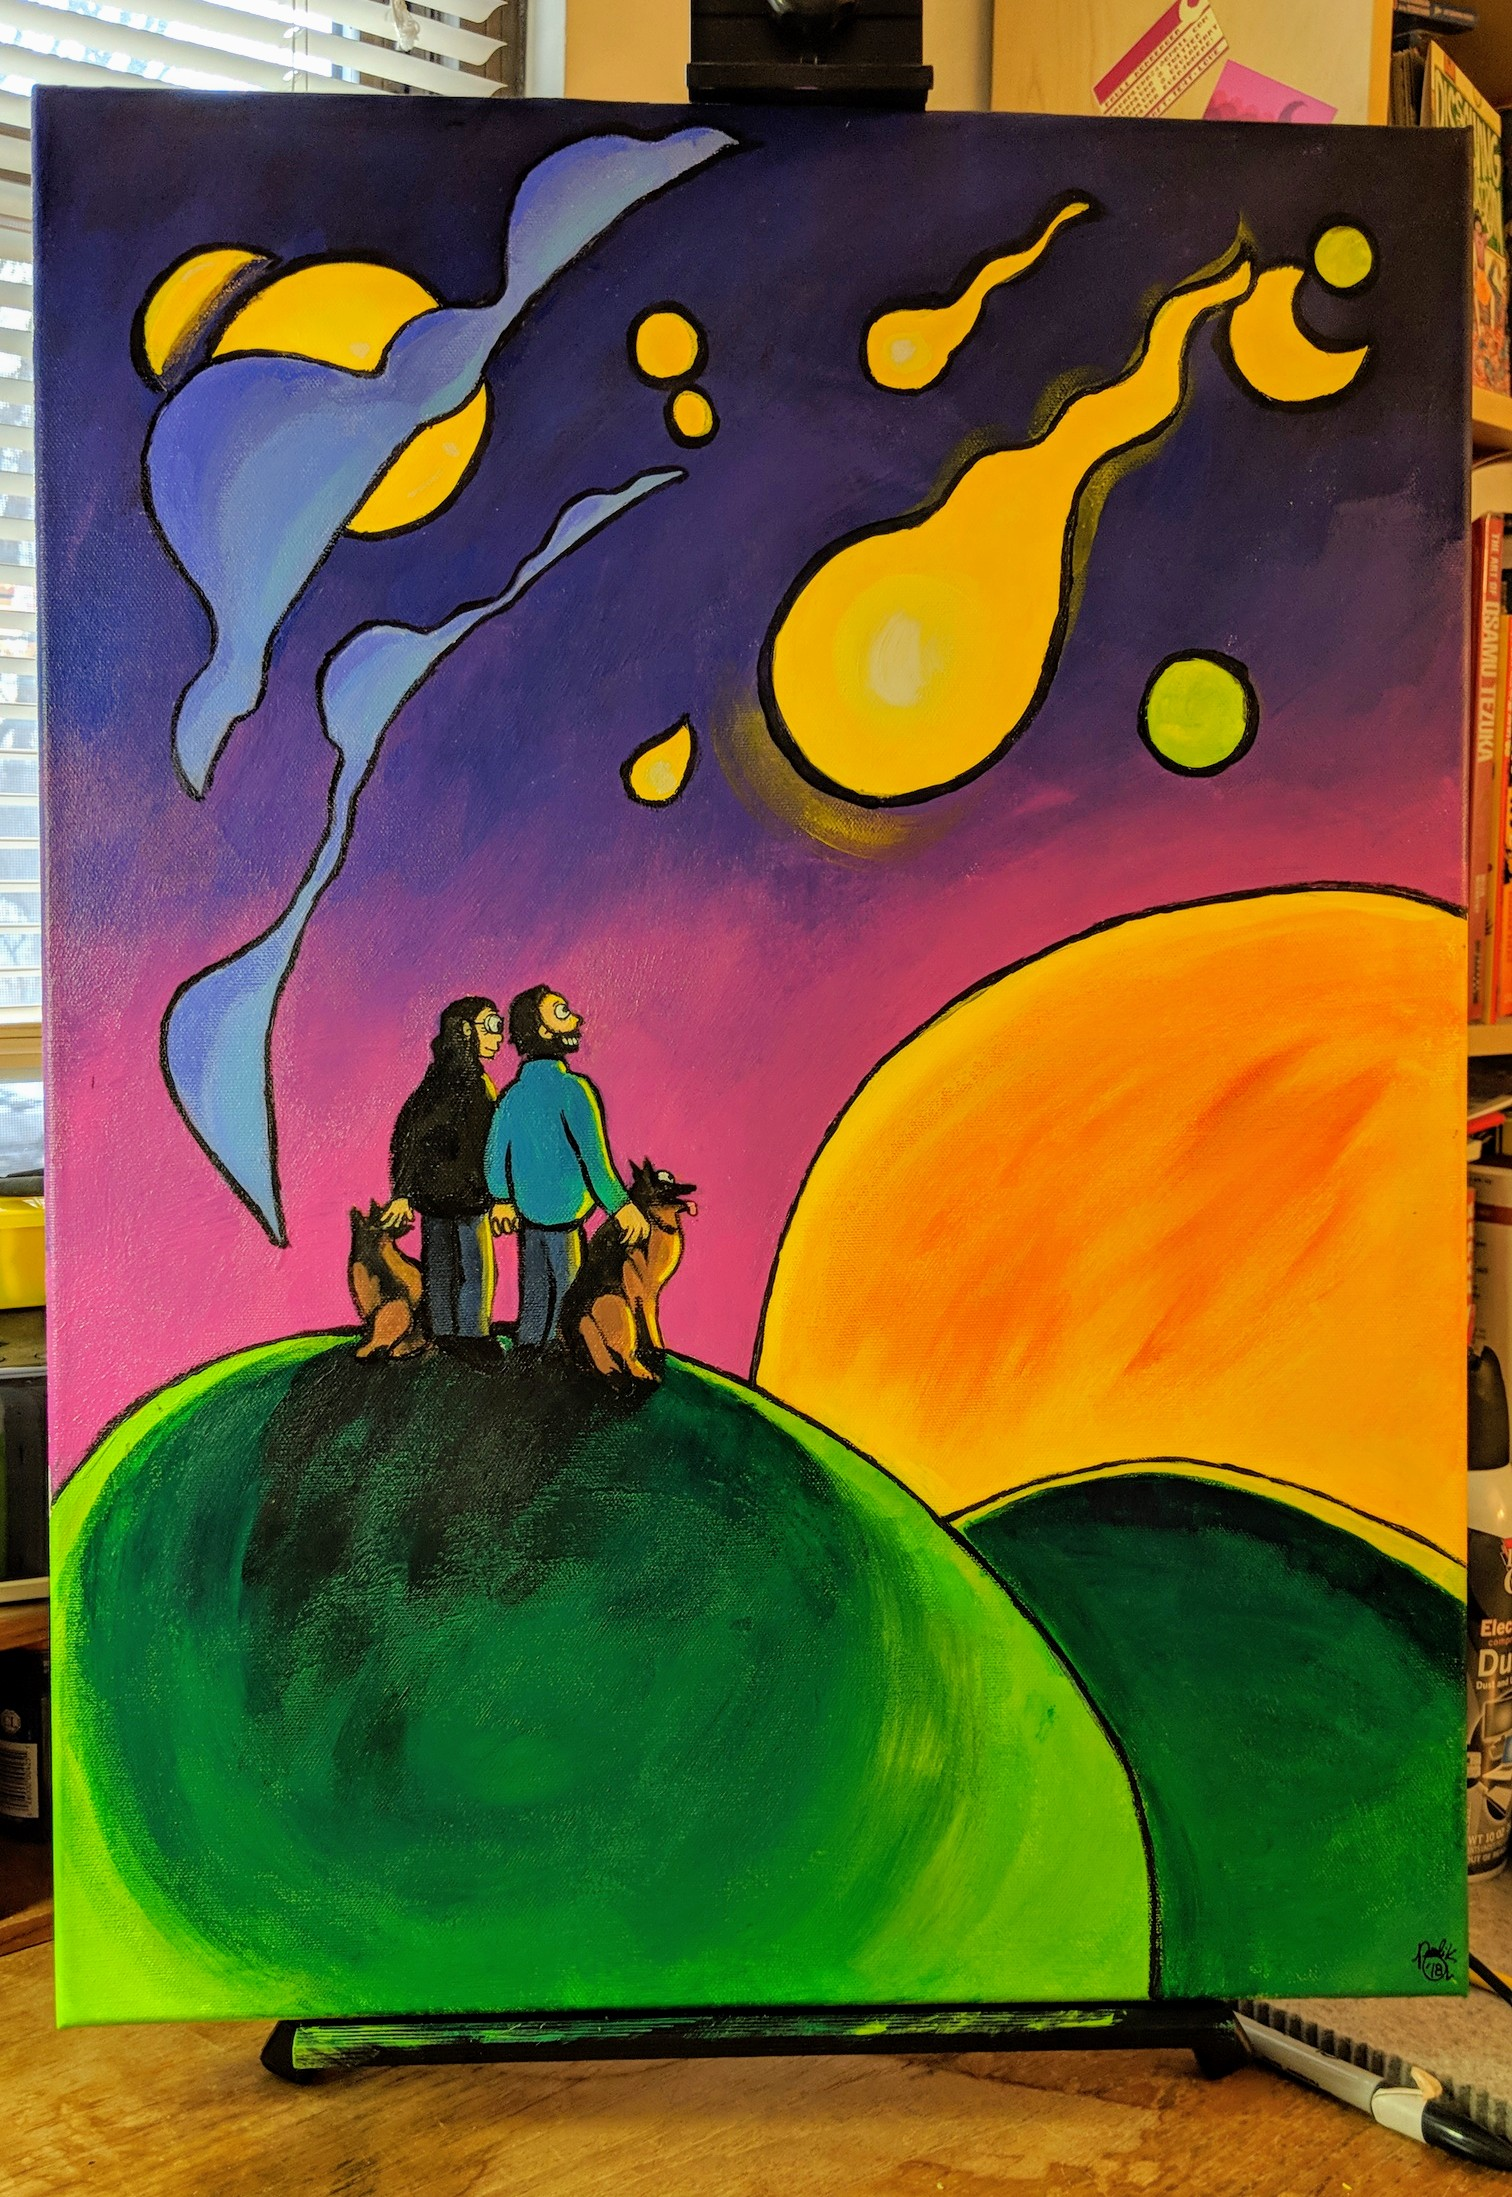 Untitled acrylic painting featuring a man and a woman looking up at a night sky